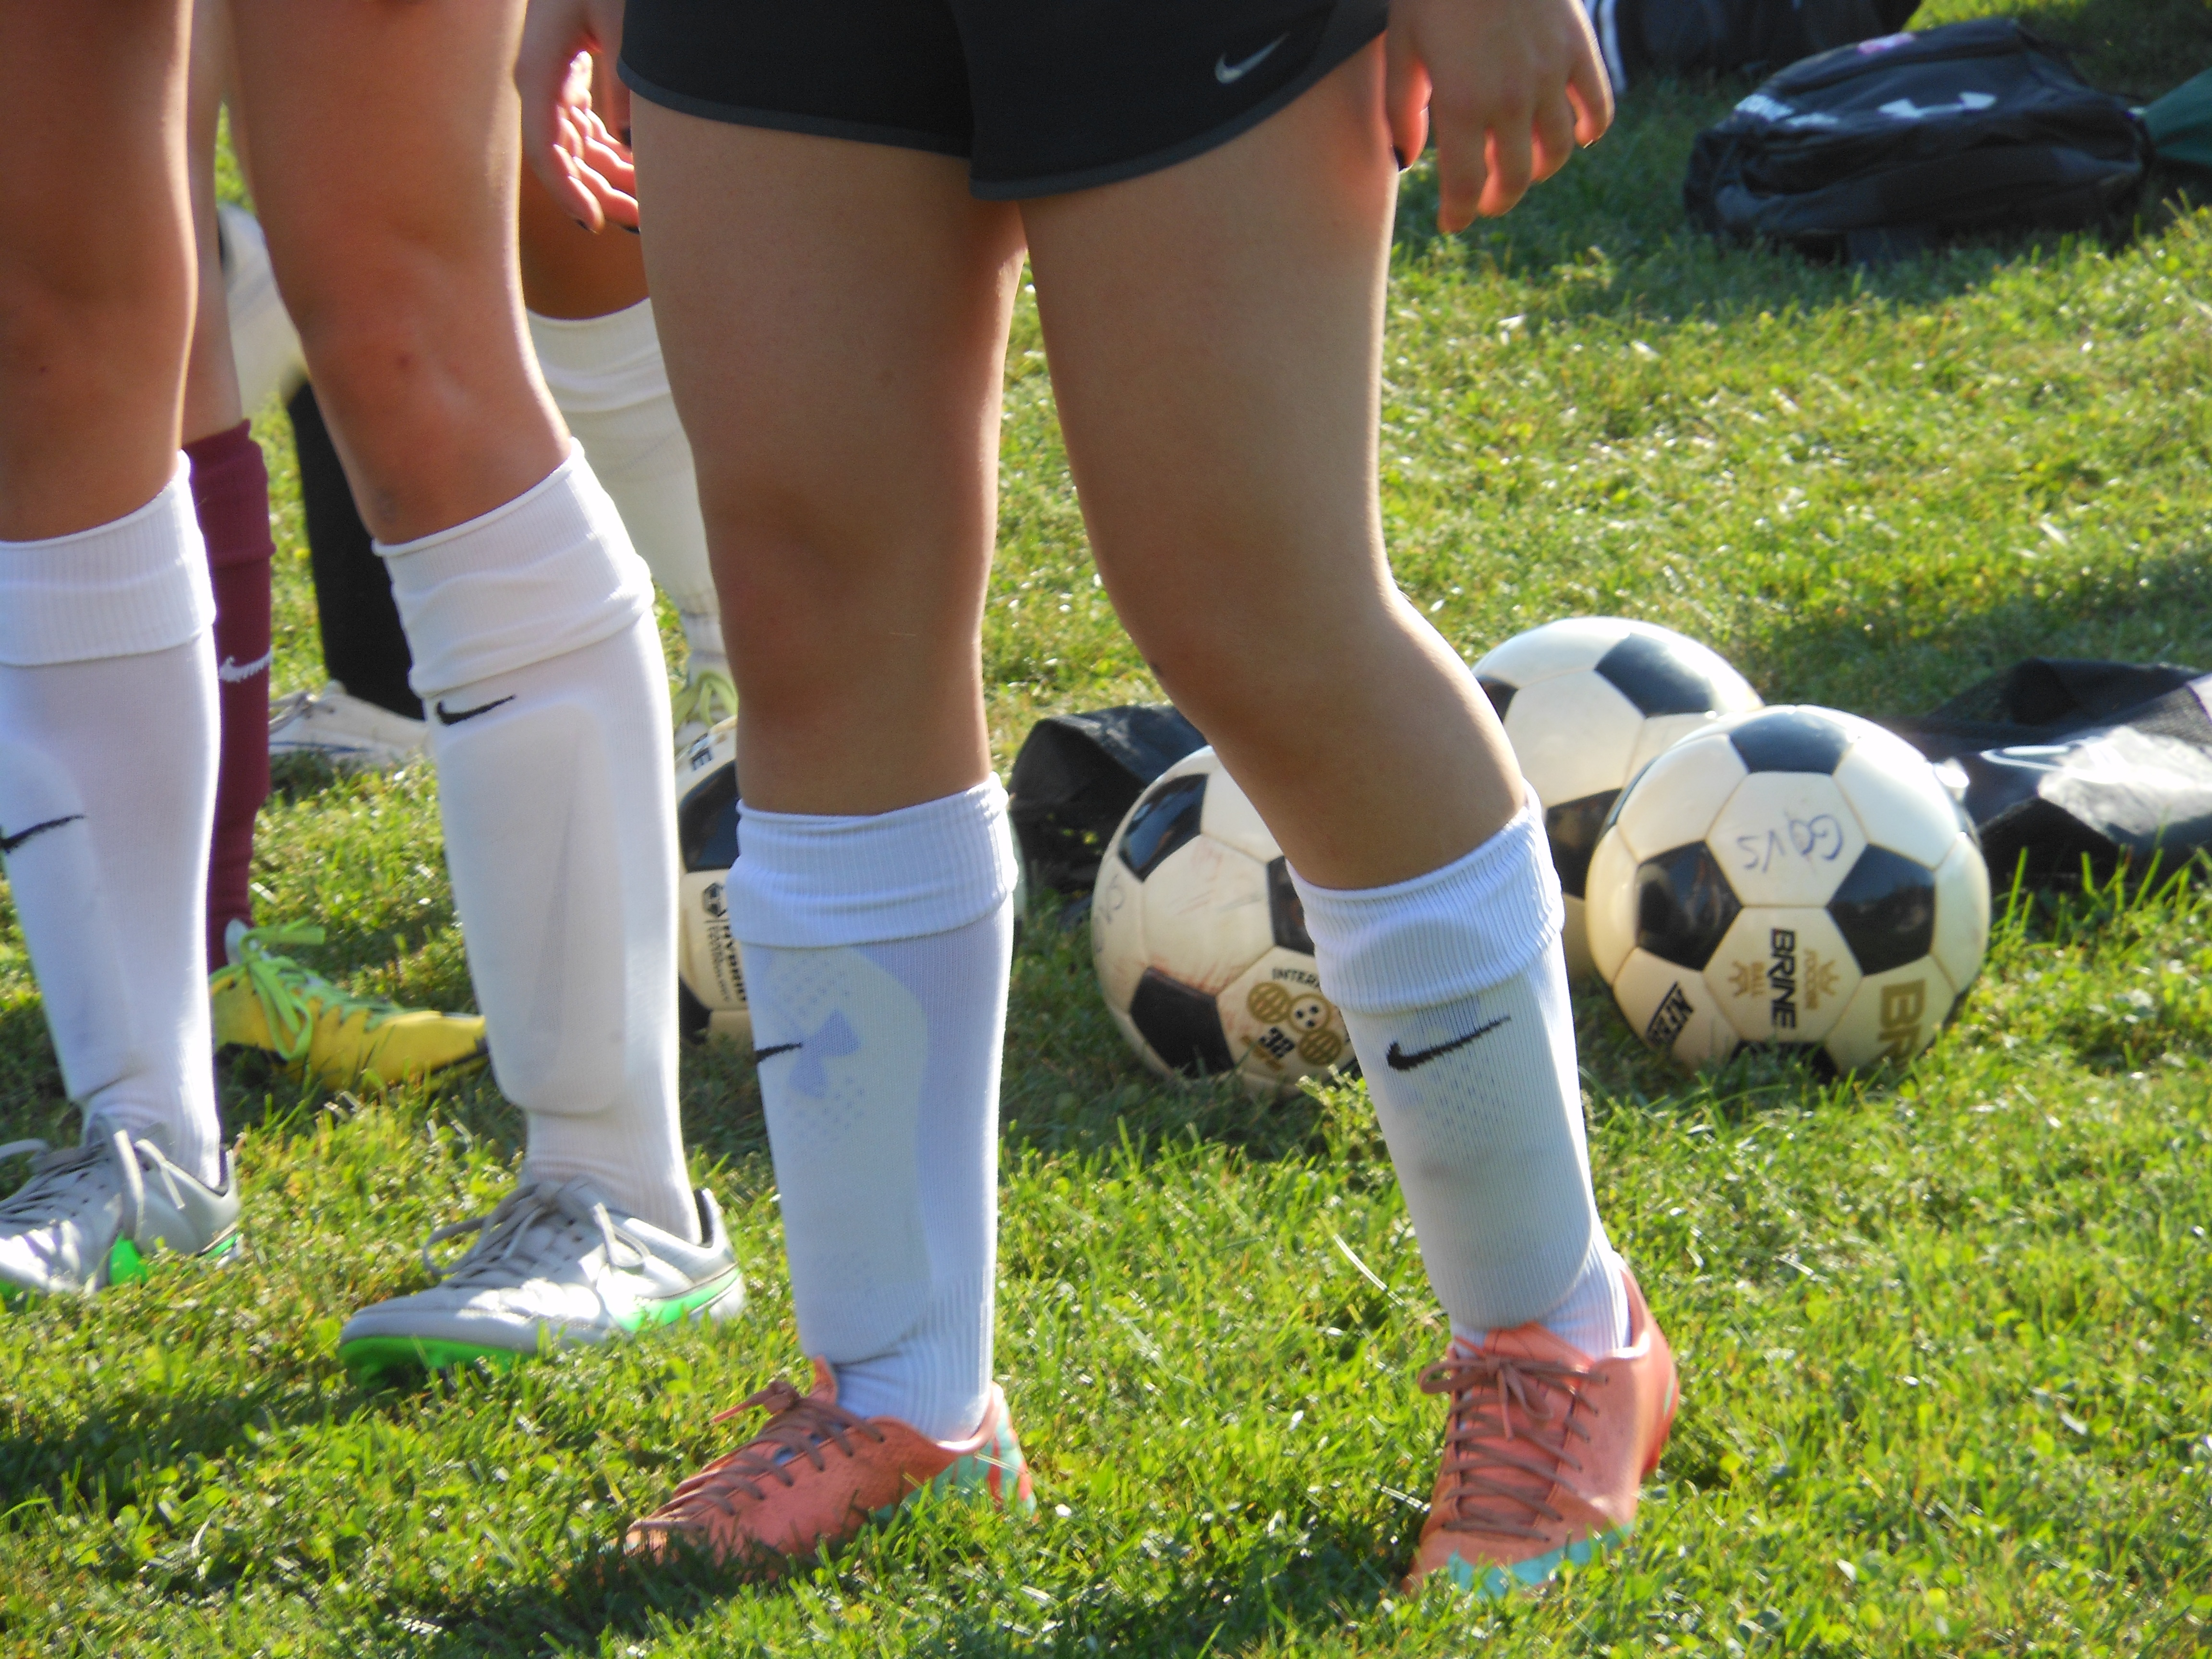 Fueling Your Soccer Match